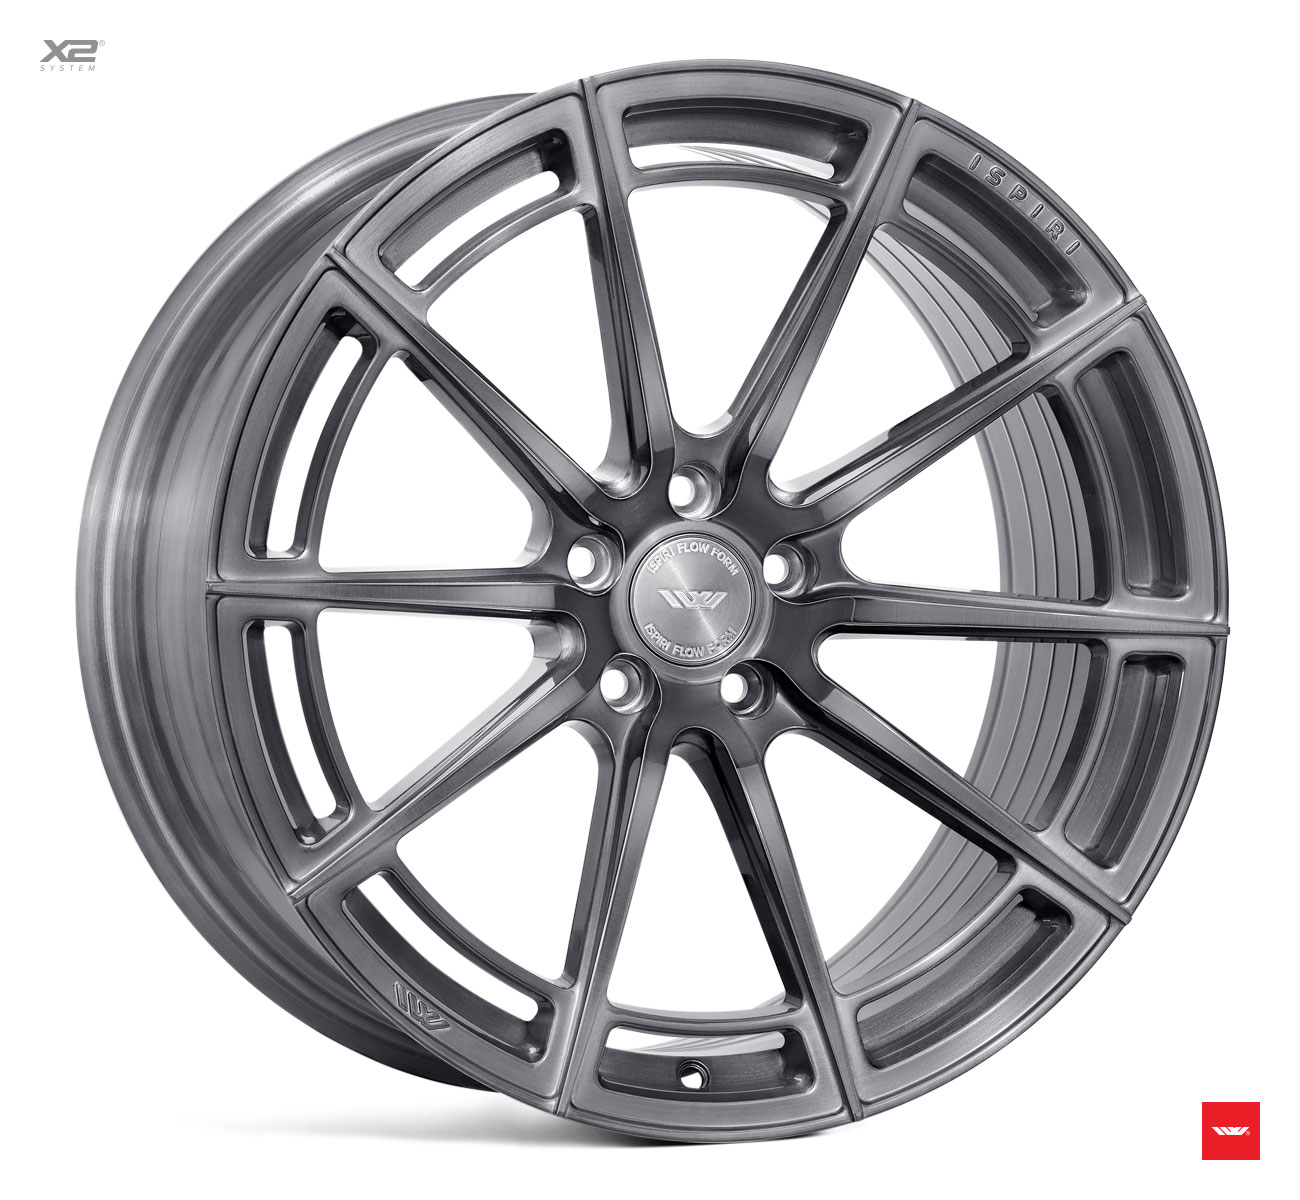 "NEW 20"" ISPIRI FFR2 MULTI-SPOKE ALLOY WHEELS IN FULL BRUSHED CARBON TITANIUM , WIDER 10"" REAR"